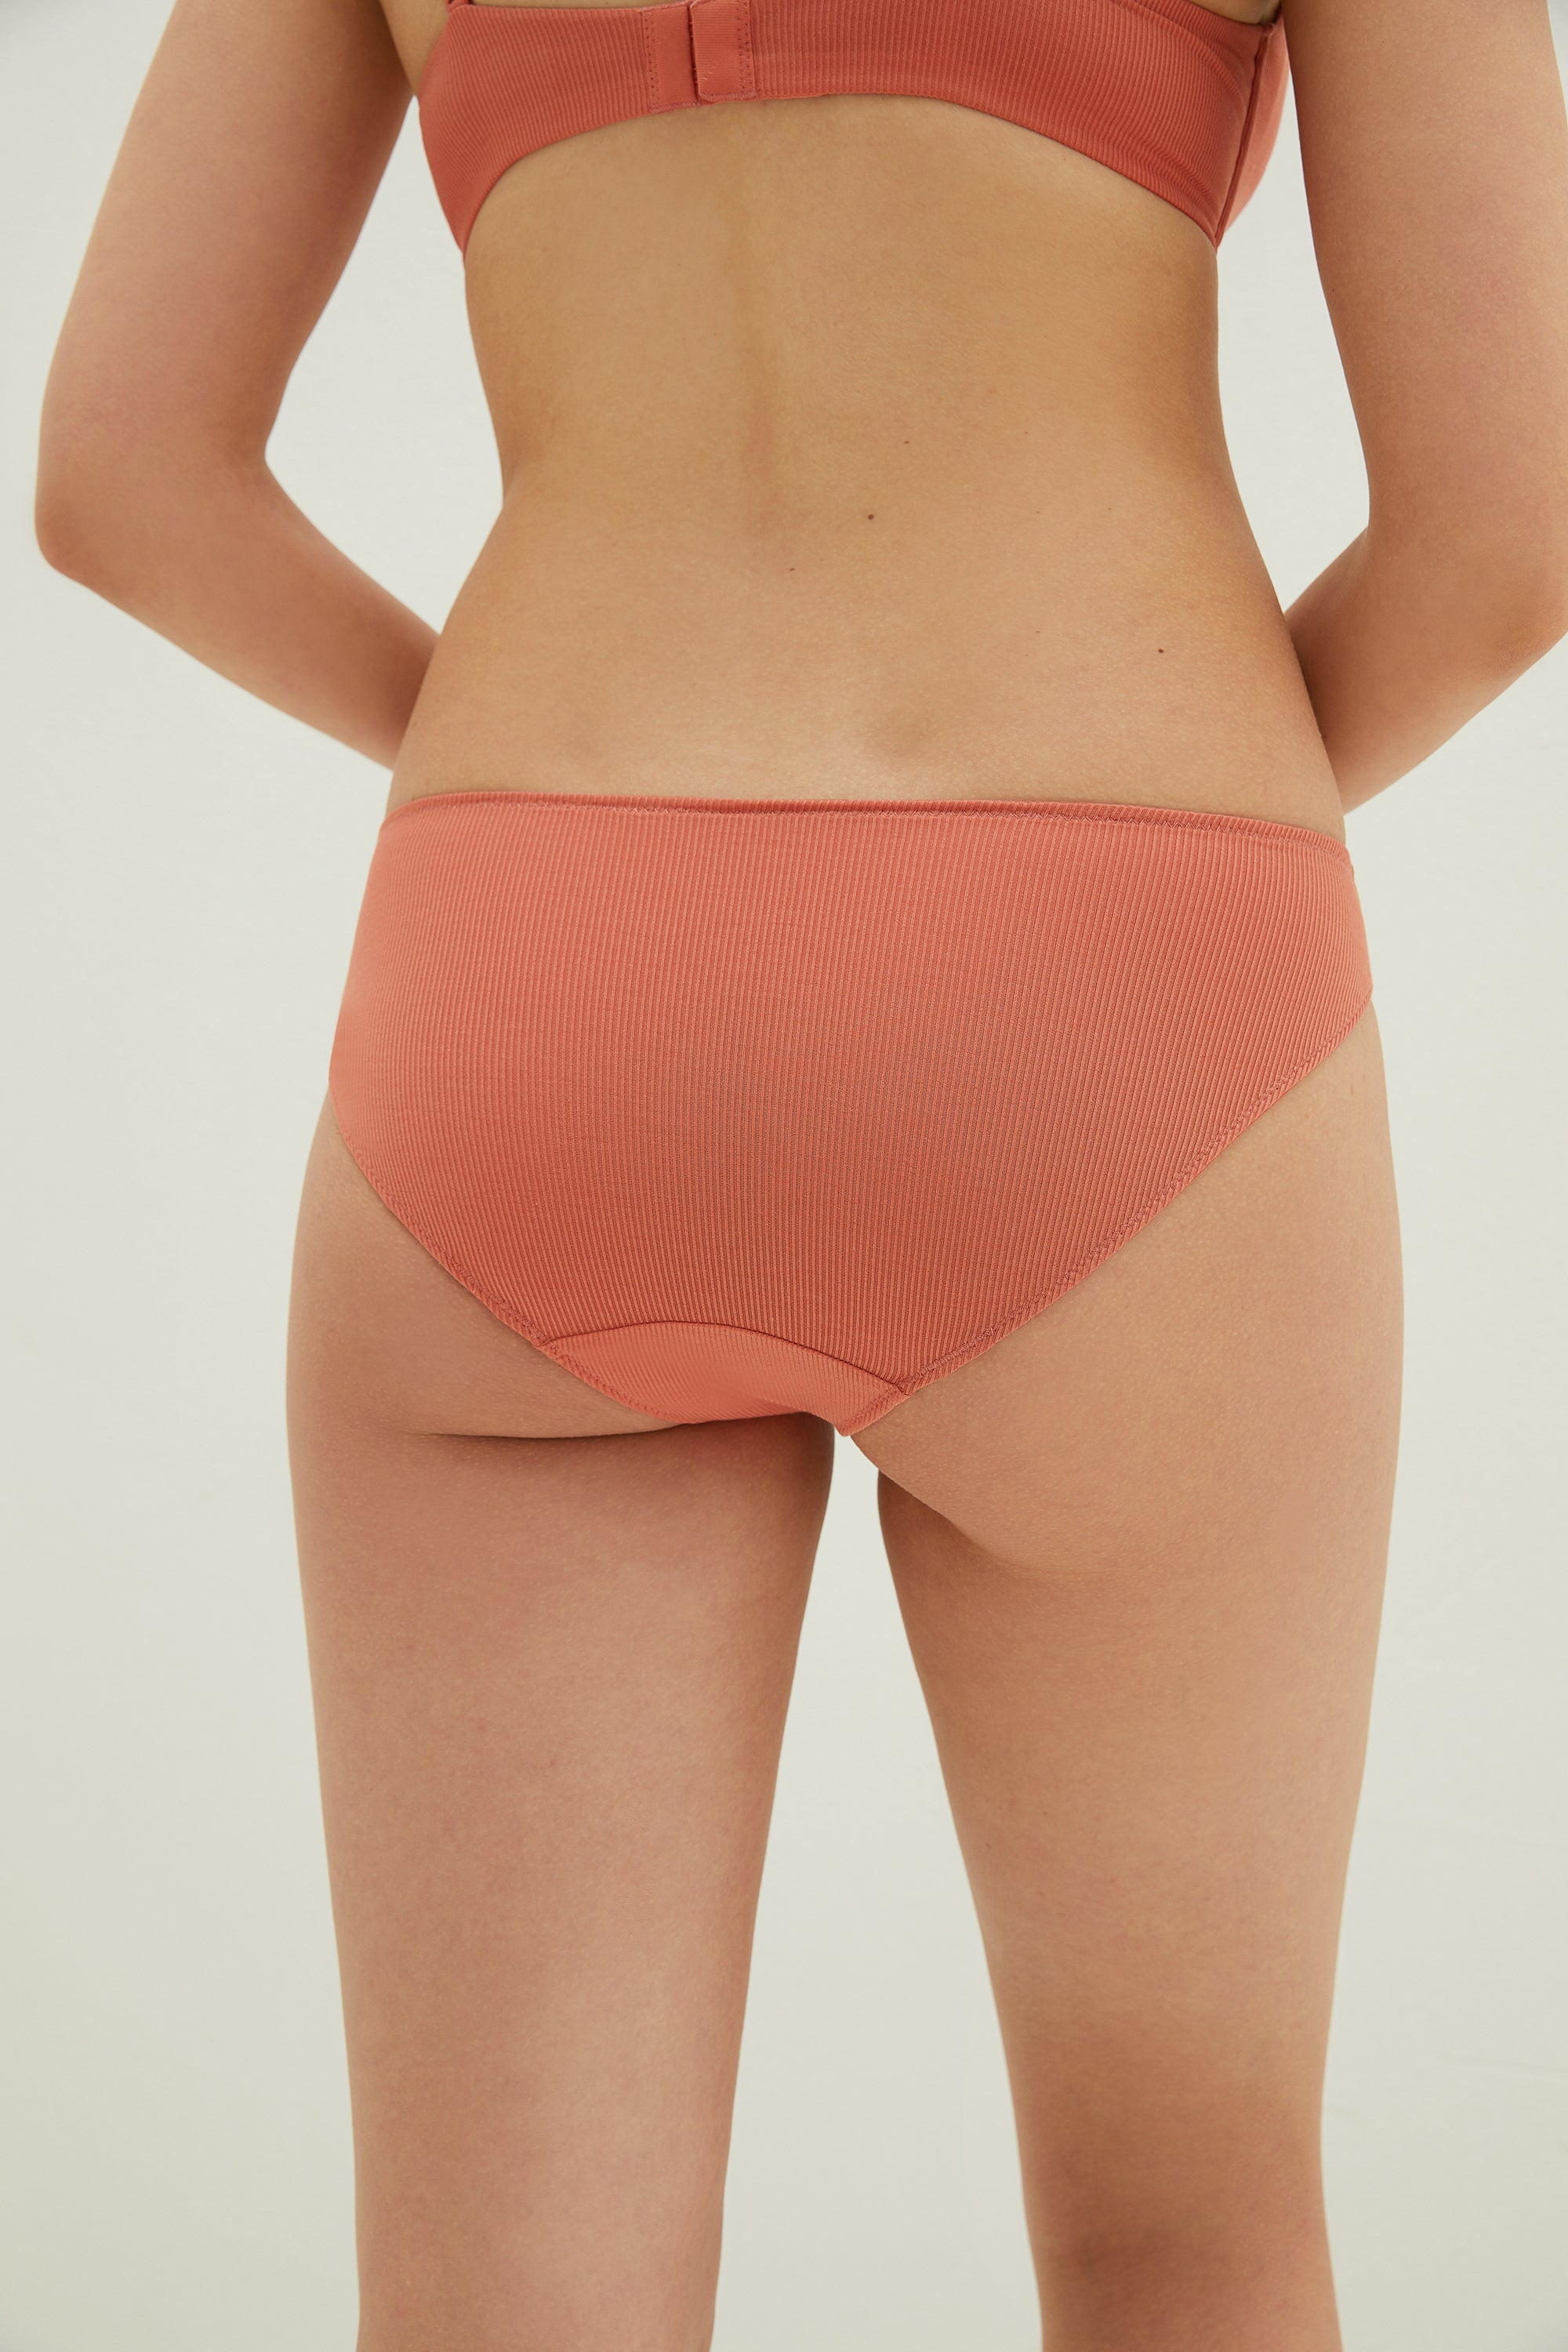 Model wearing NEIWAI's Pure Beauty V-shape TENCEL™ Low Waist Brief in Orange.